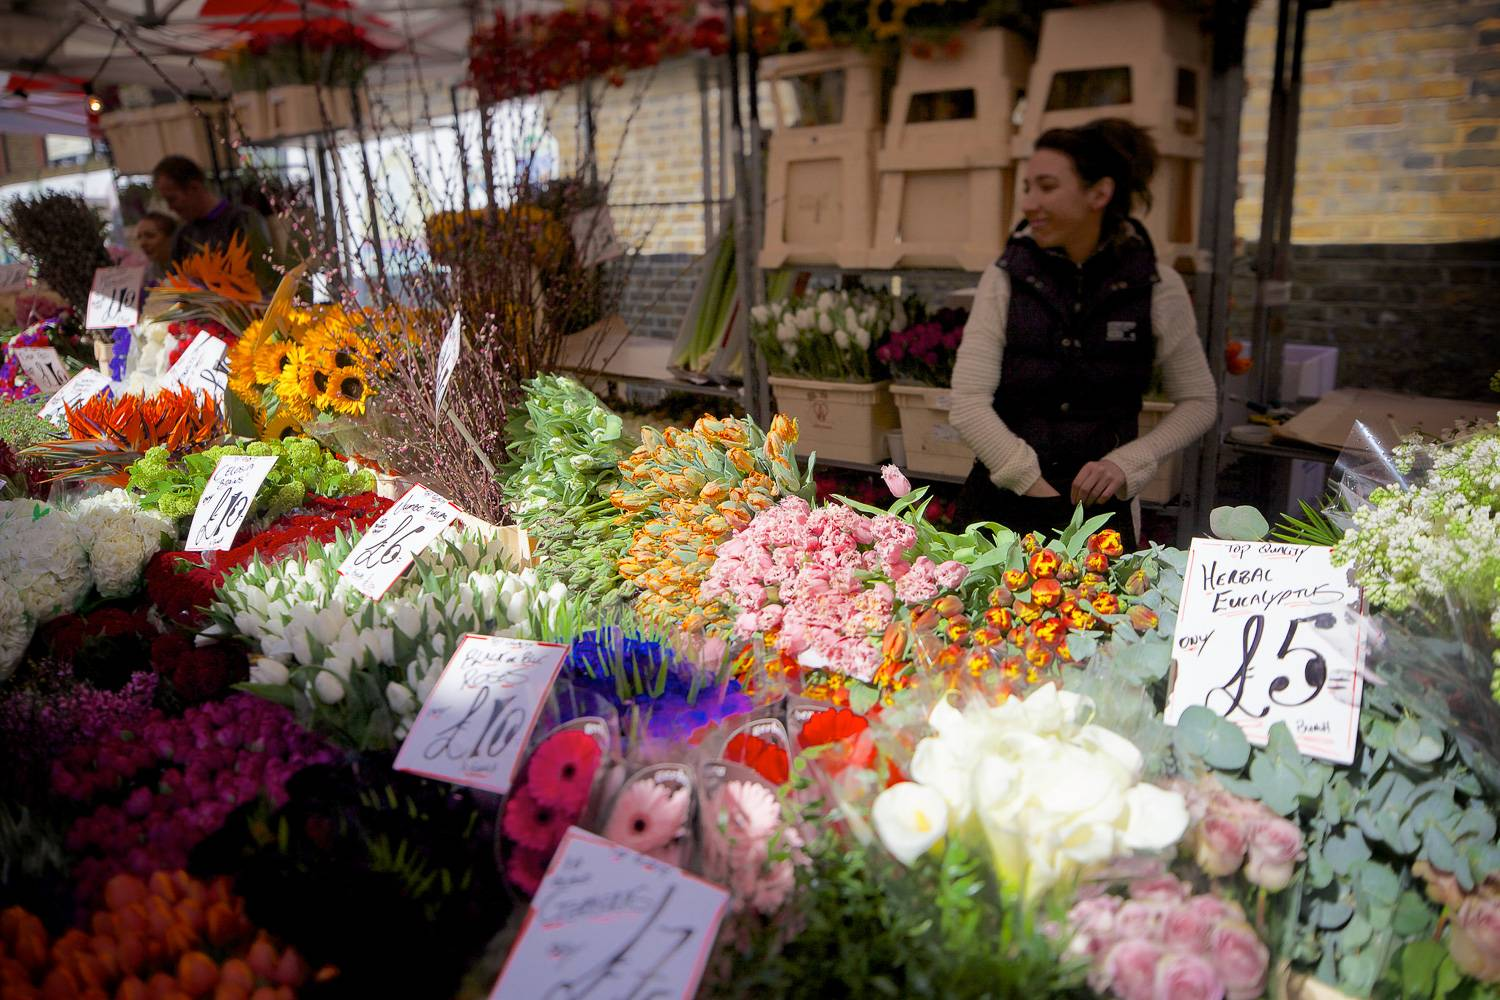 Image of a stall selling flowers at the Columbia Road Flower Market in London.